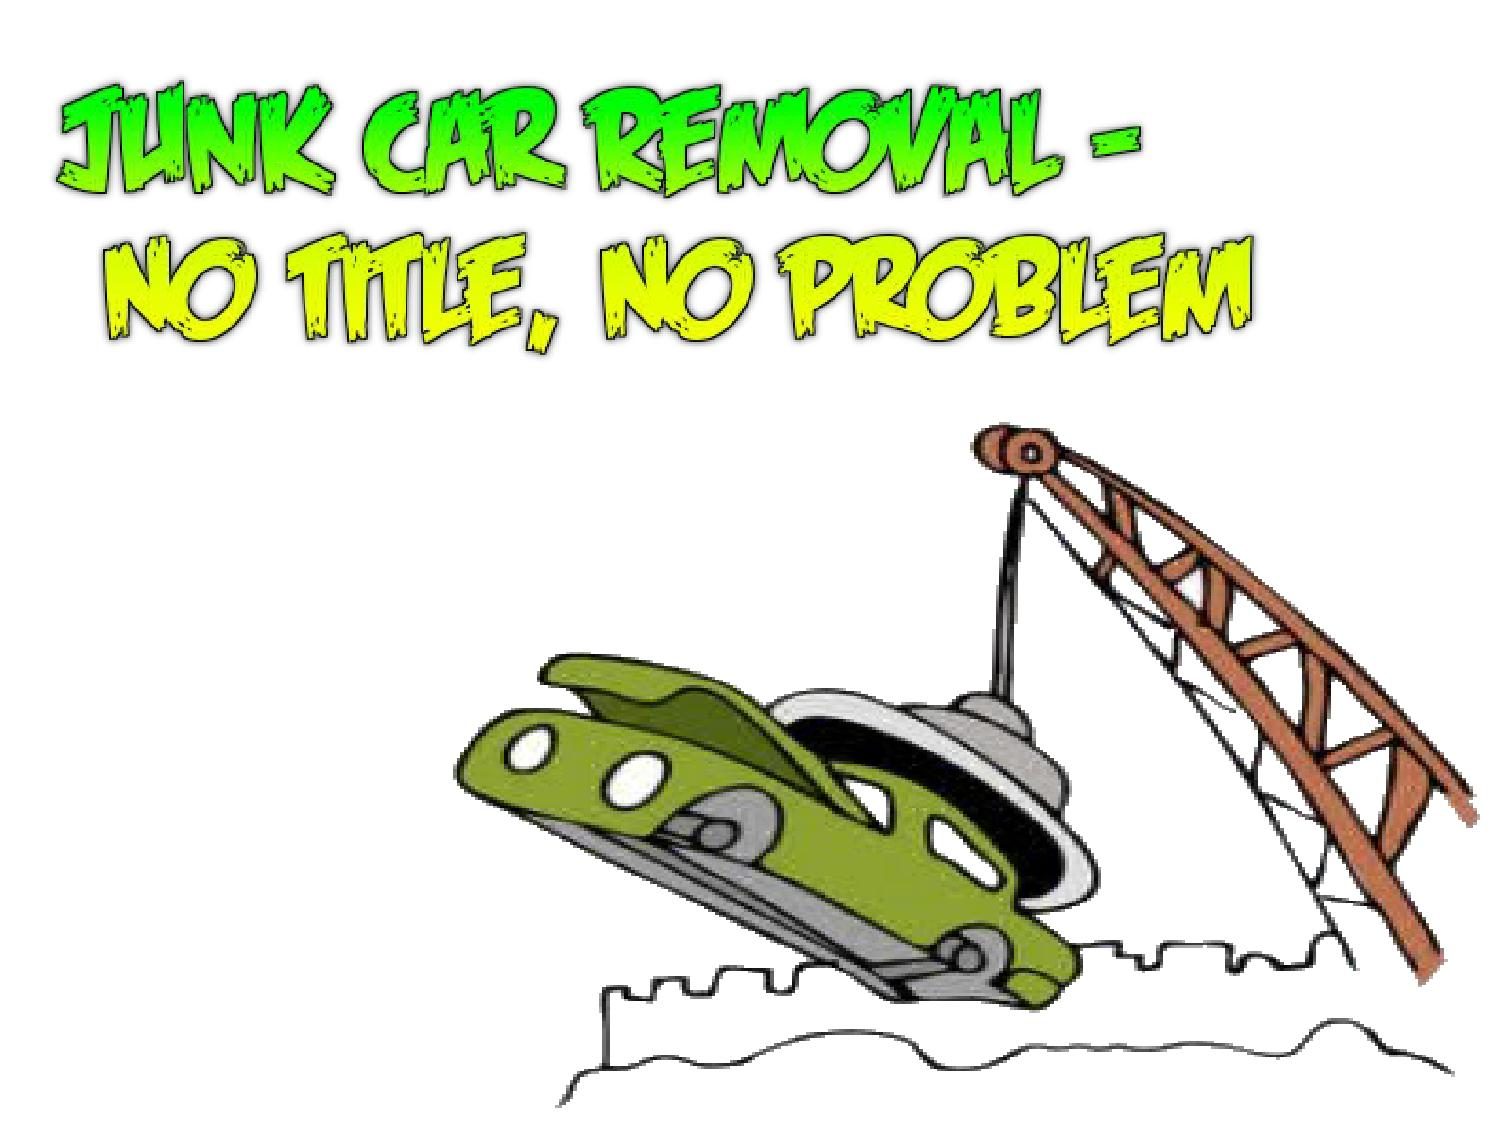 Get Rid Junk Car Without Title >> Junk car removal no title, no problem by Priss 75 - Issuu